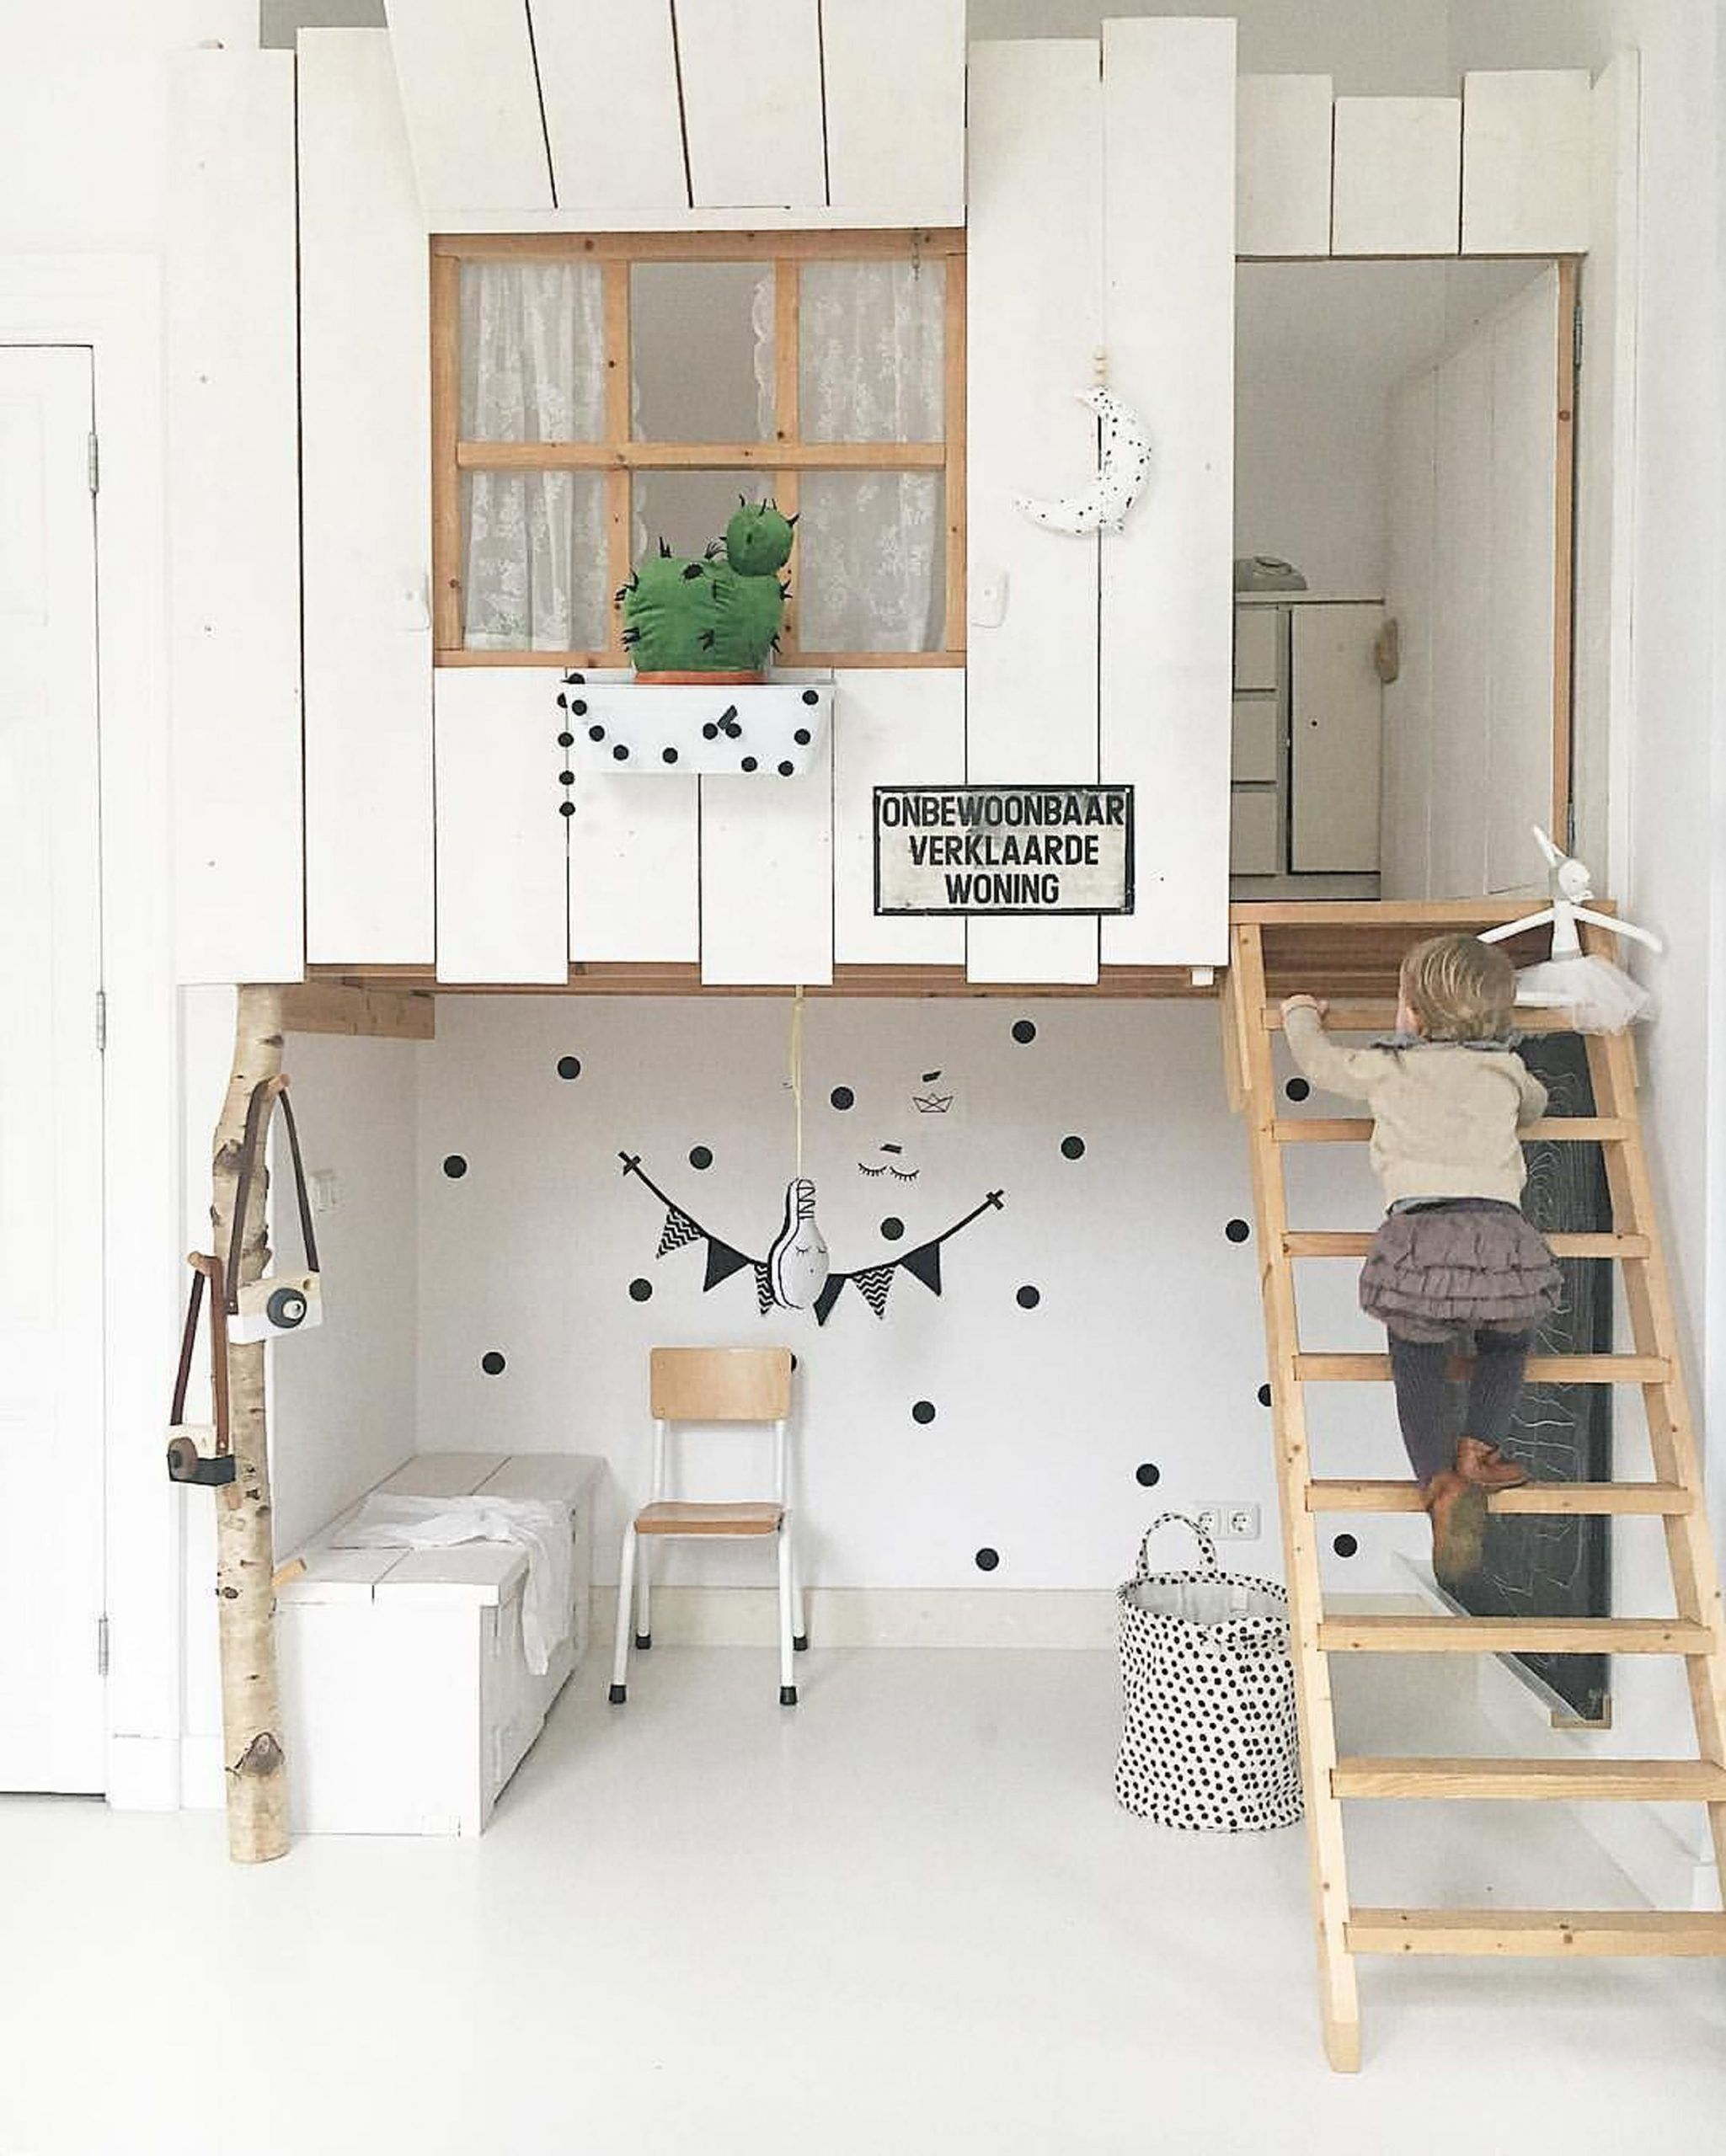 The FINAL I Design, You Decide: Pick a Theme For the Kids Attic Playroom - Emily Henderson#attic #decide #design #emily #final #henderson #kids #pick #playroom #theme